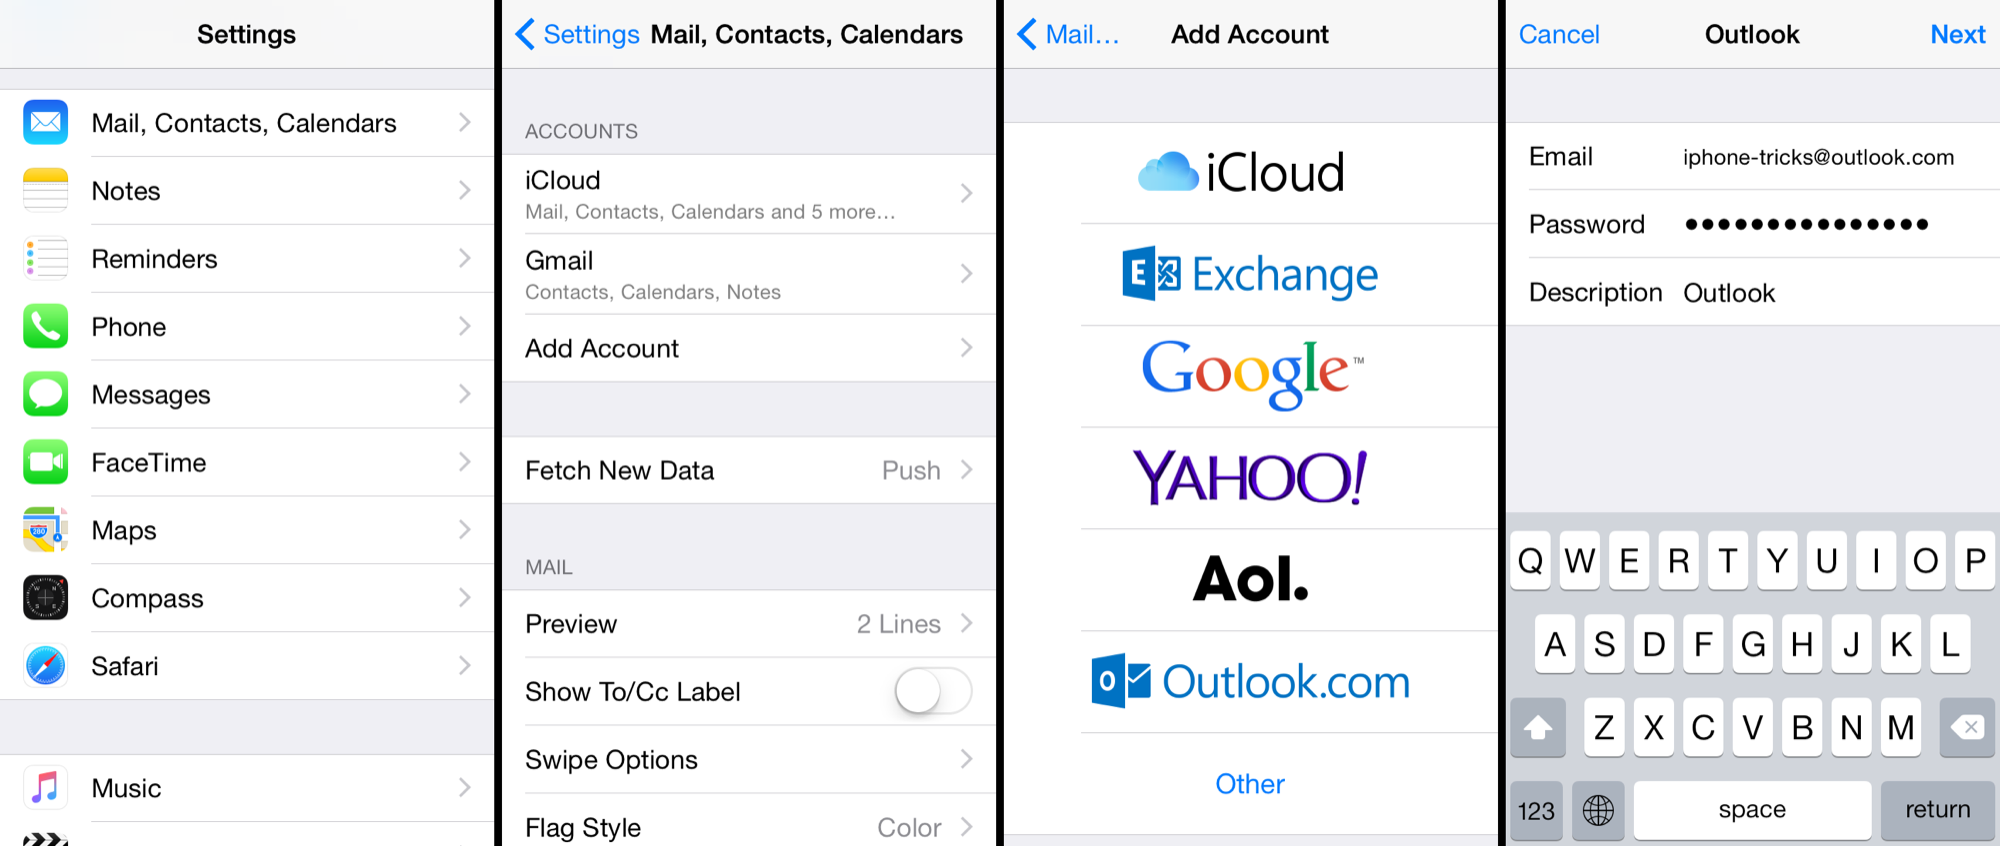 Easiest Way to Setup Msn Account on iPhone